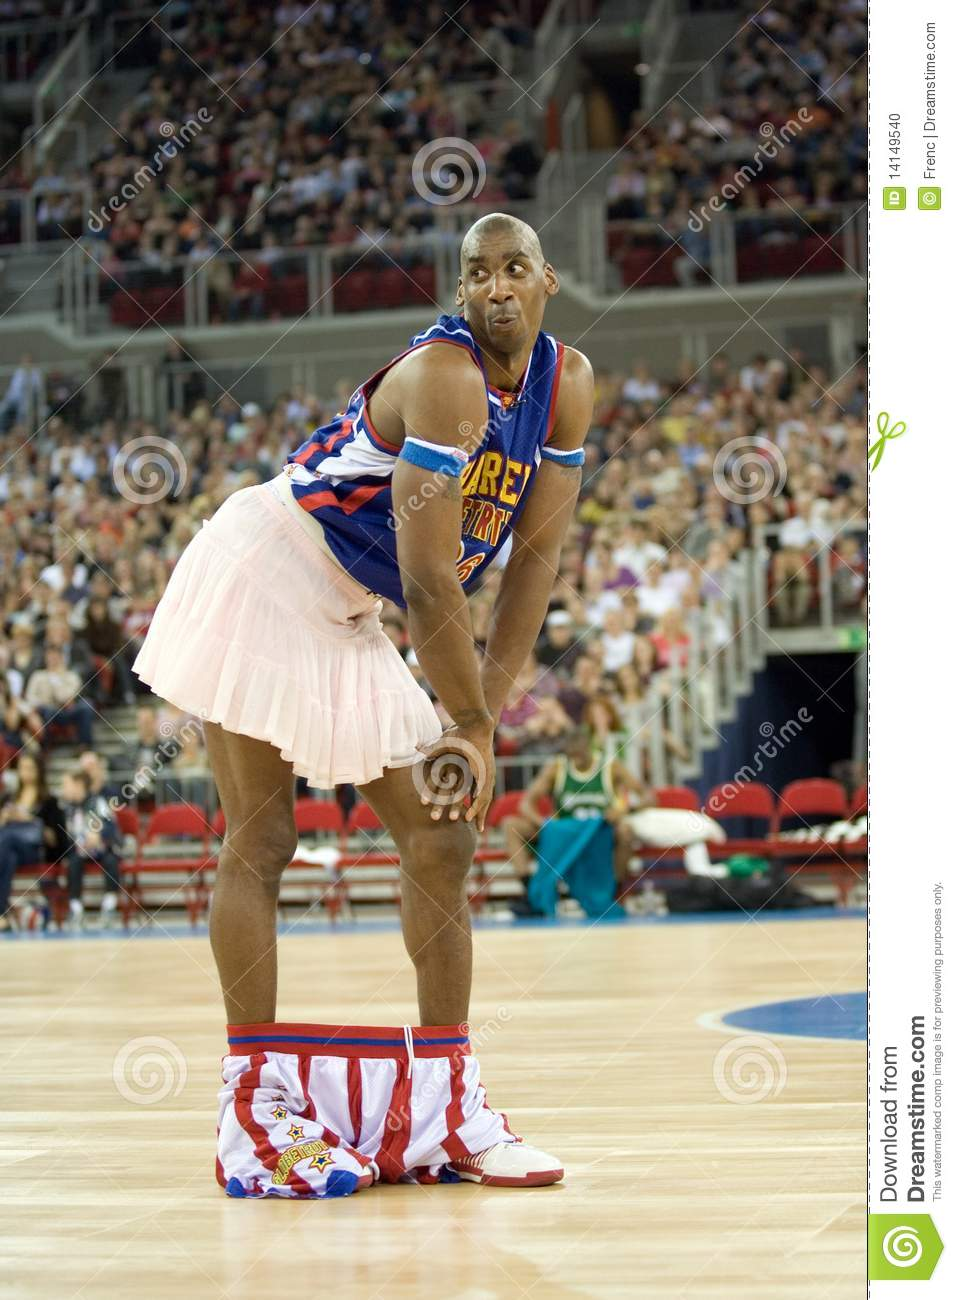 Harlem Globetrotters Basketball Team In An Exhibit Editorial Image.